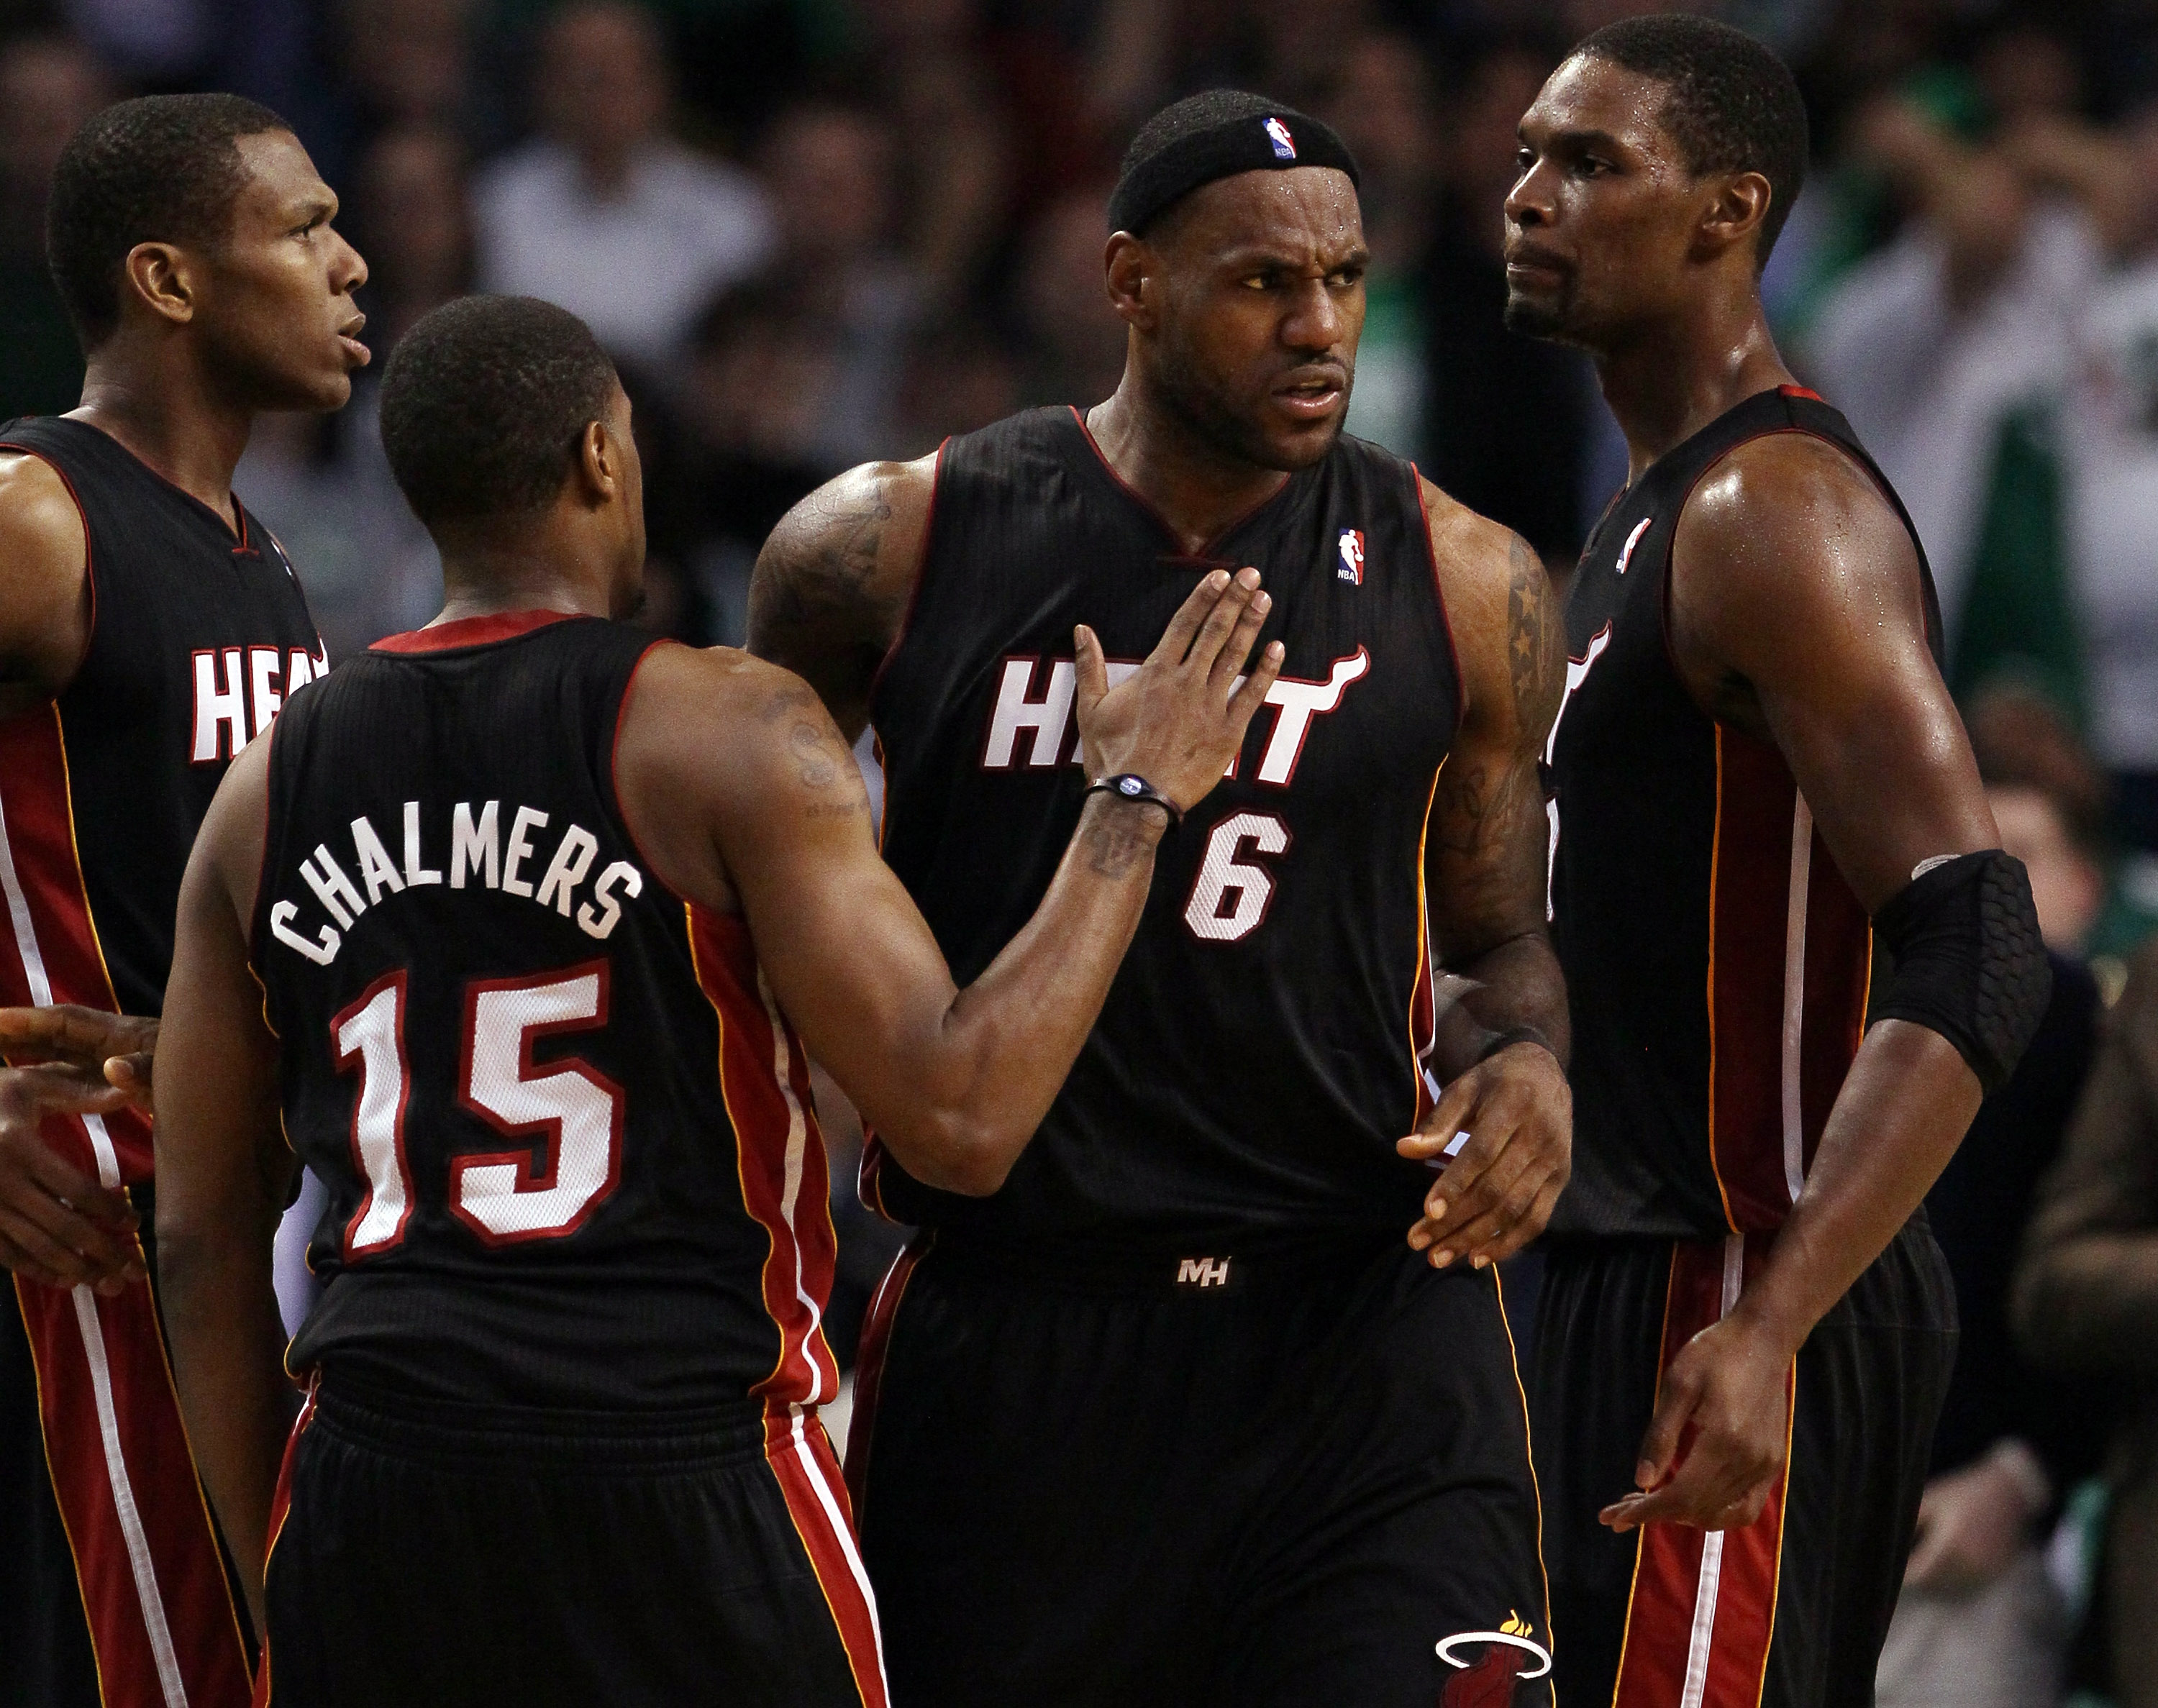 BOSTON, MA - MAY 09: LeBron James #6 of the Miami Heat is congratulated by teammates Chris Bosh  #1 and Mario Chalmers #15 after James drew the foul in the second half against the Boston Celtics in Game Four of the Eastern Conference Semifinals in the 201